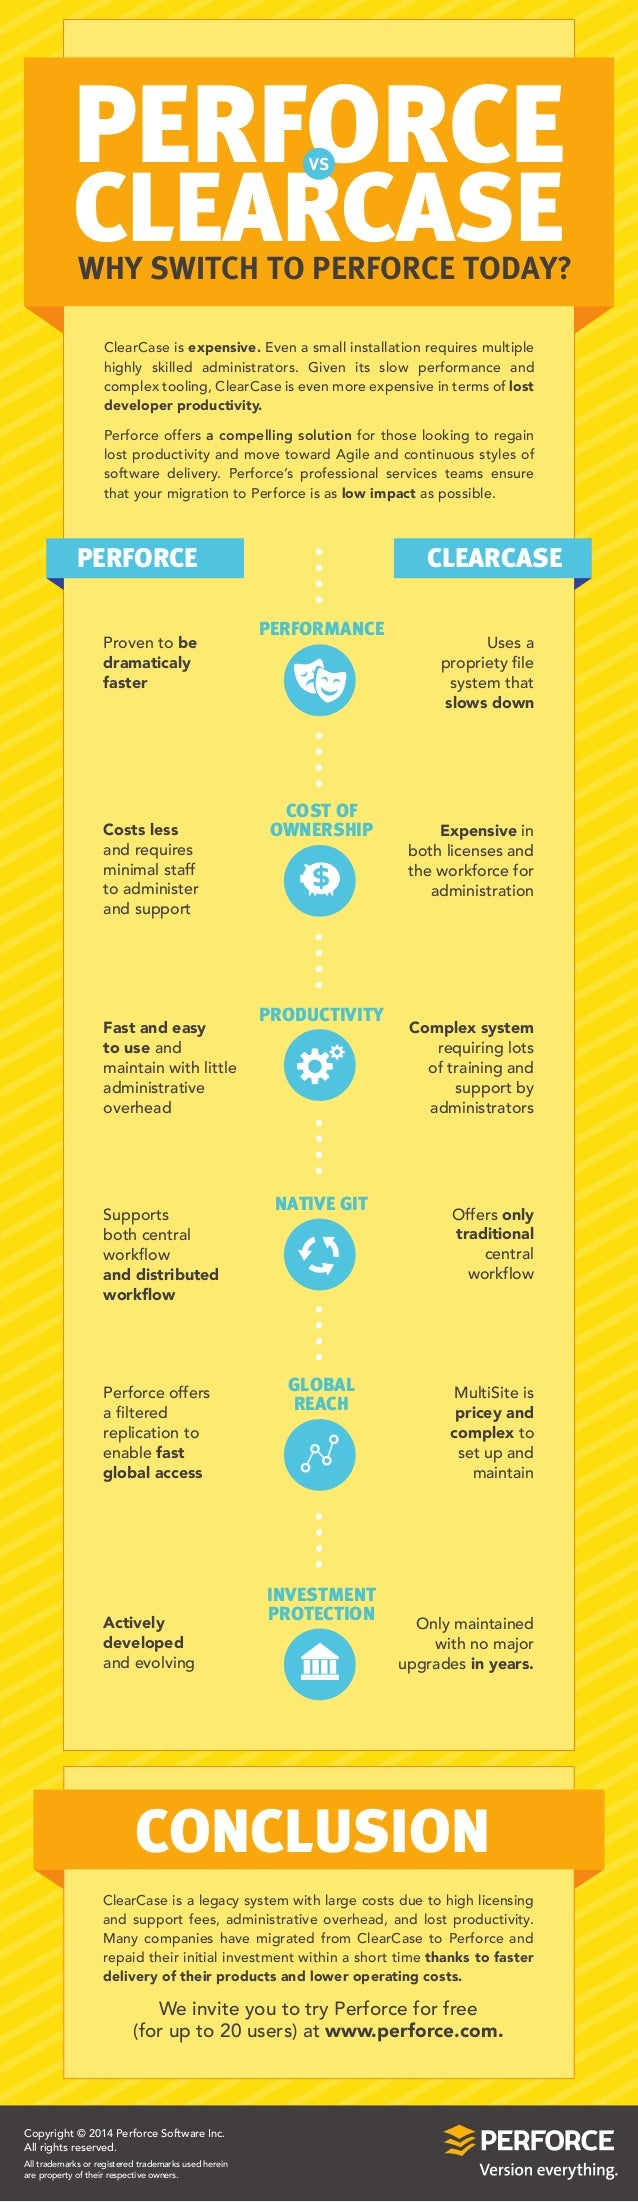 WHY SWITCH TO PERFORCE TODAY? PERFORCE CLEARCASE VS PERFORCE CLEARCASE ClearCase is expensive. Even a small installation r...